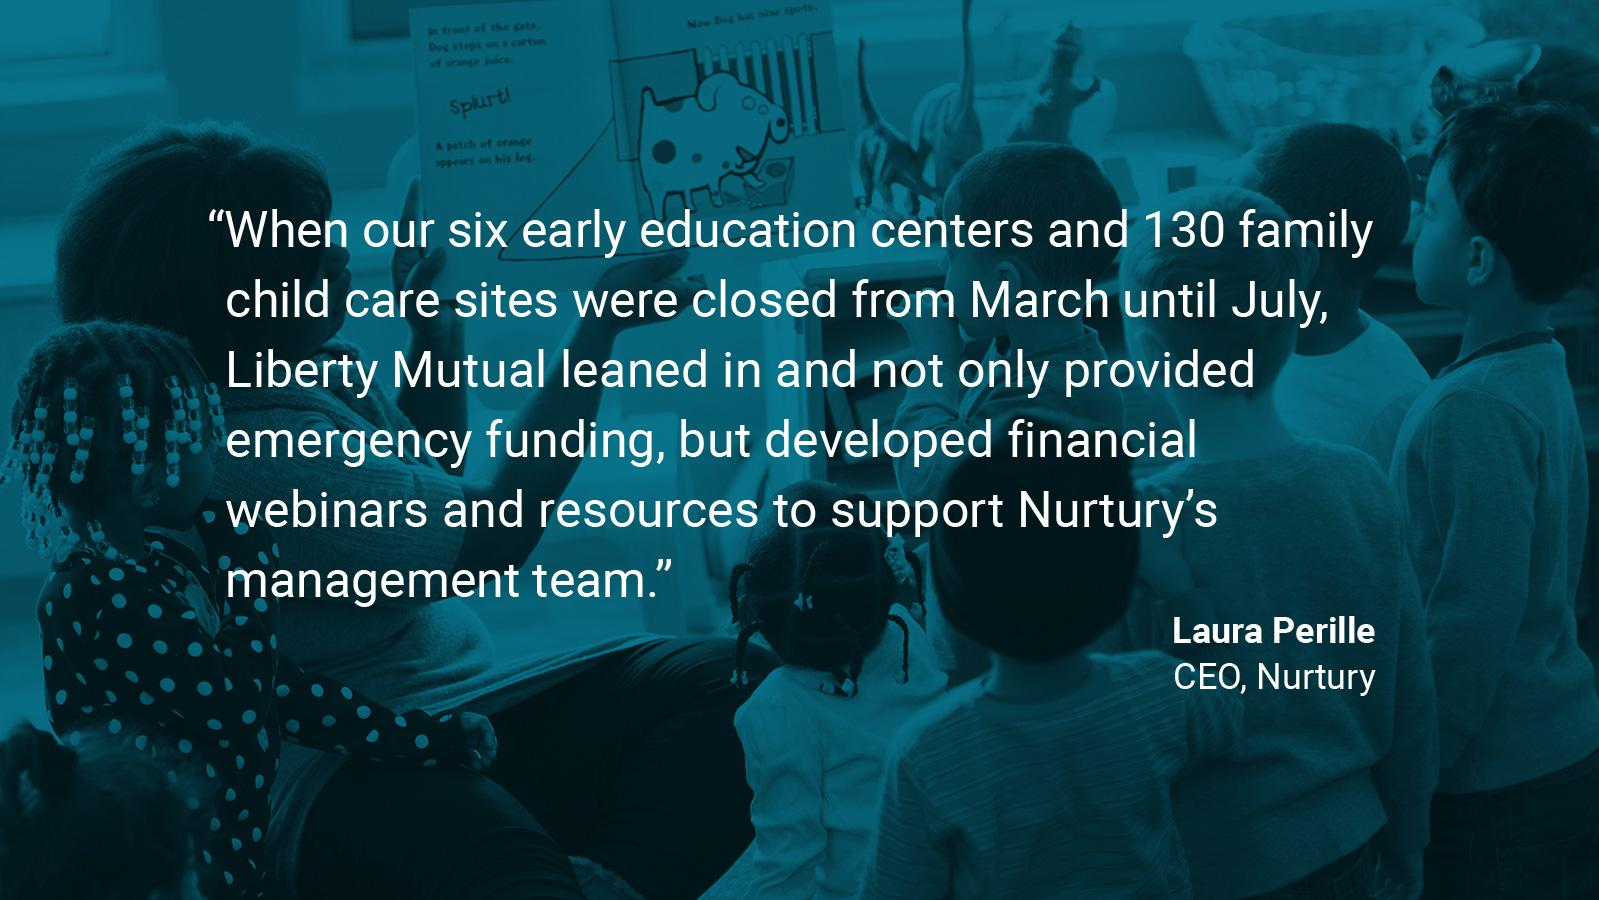 "(slide 1 of 4) Quote by: Laura Perille, CEO at Nurtury: ""When our six early education centers and 130 family child care sites were closed from March until July, Liberty Mutual leaned in and not only provided emergency funding, but developed financial webinars and resources to support Nurtury's management team."" ."